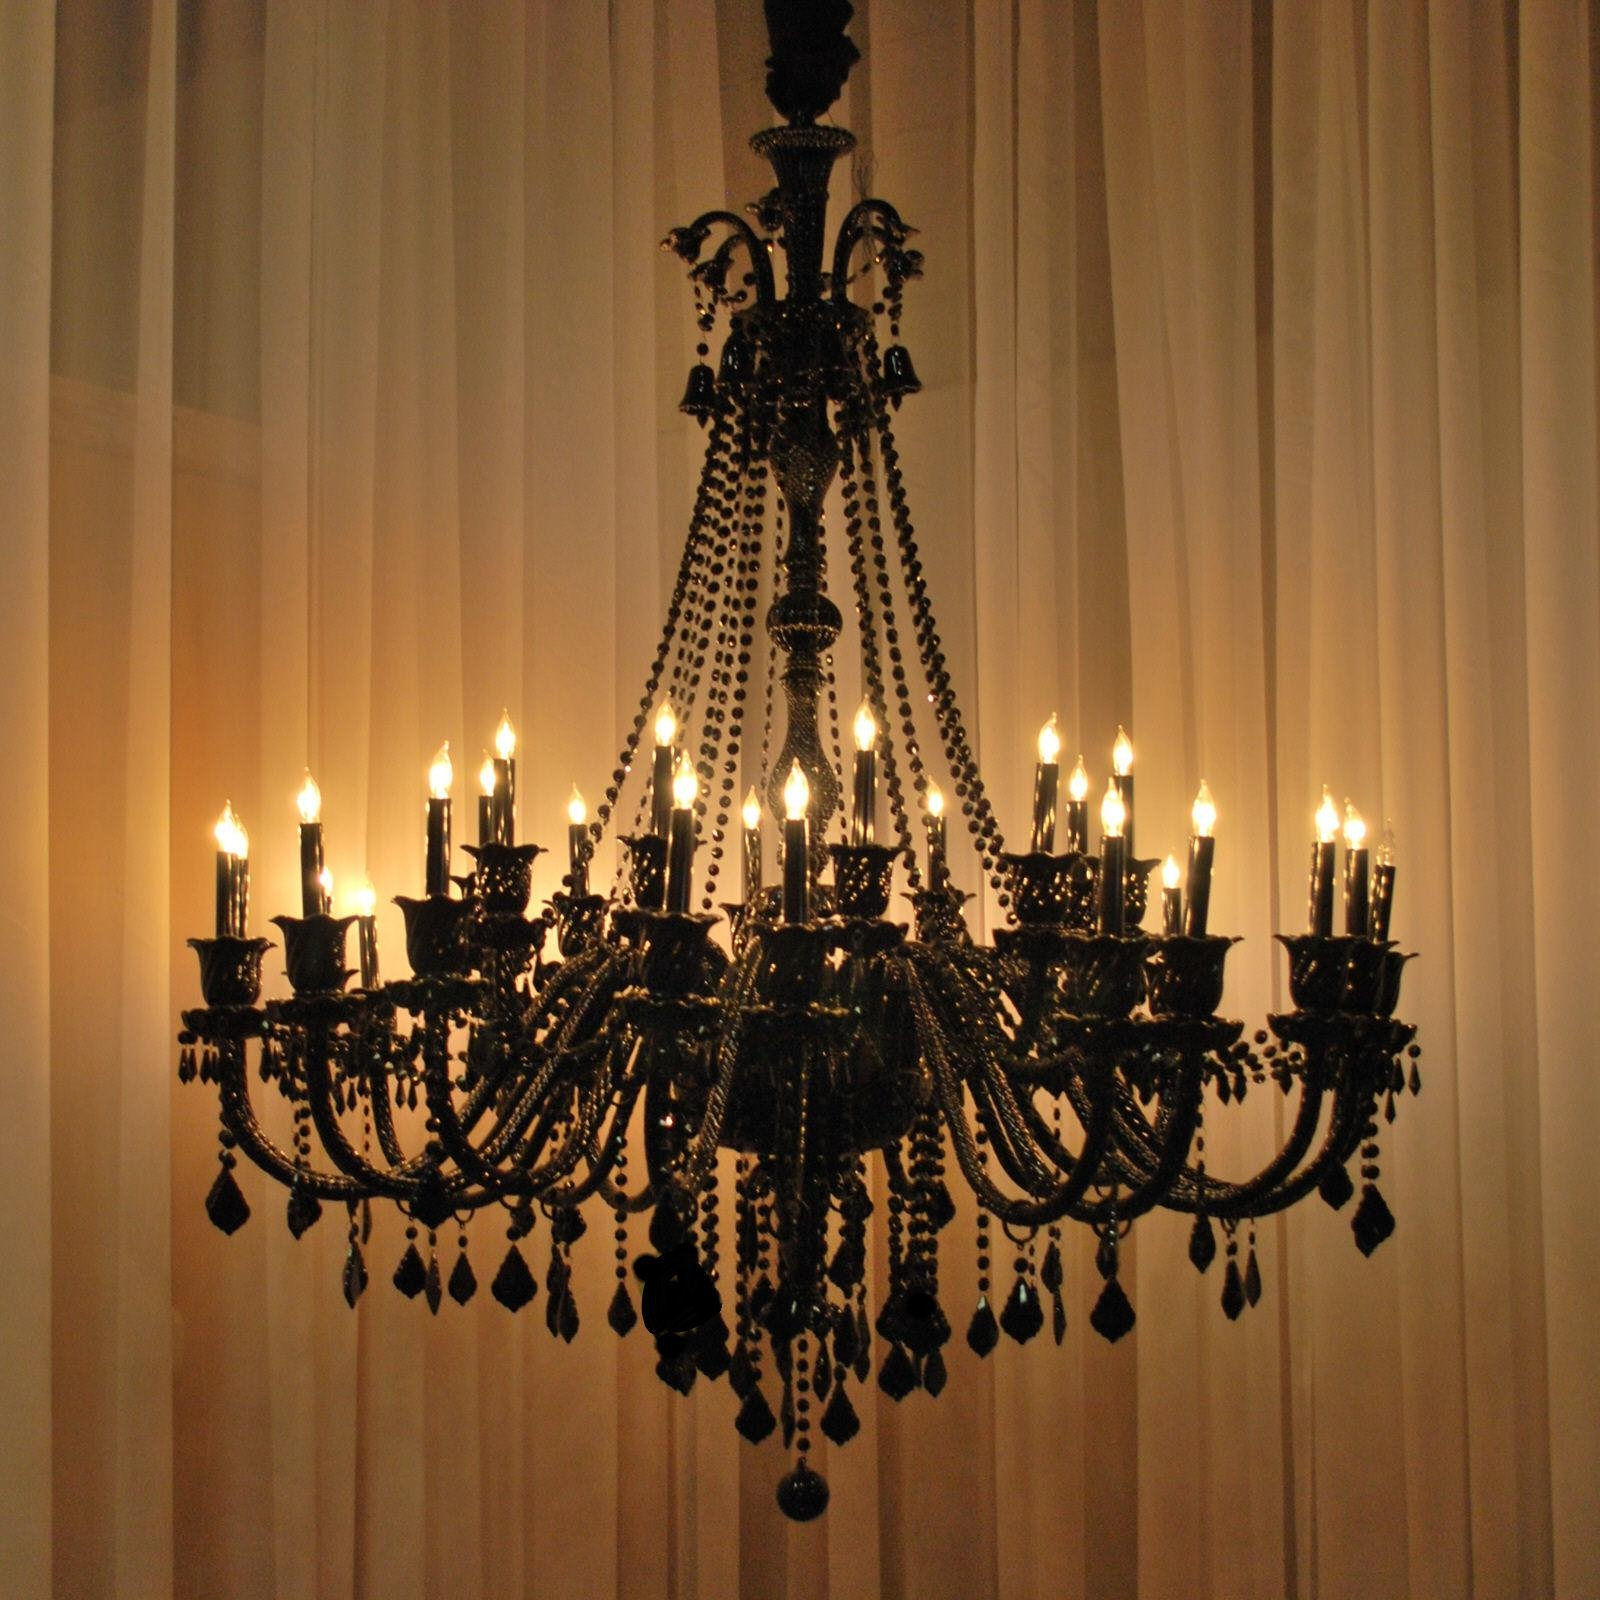 Large Chandeliers Large Crystal Chandeliers Pertaining To Huge Crystal Chandelier (Image 10 of 15)